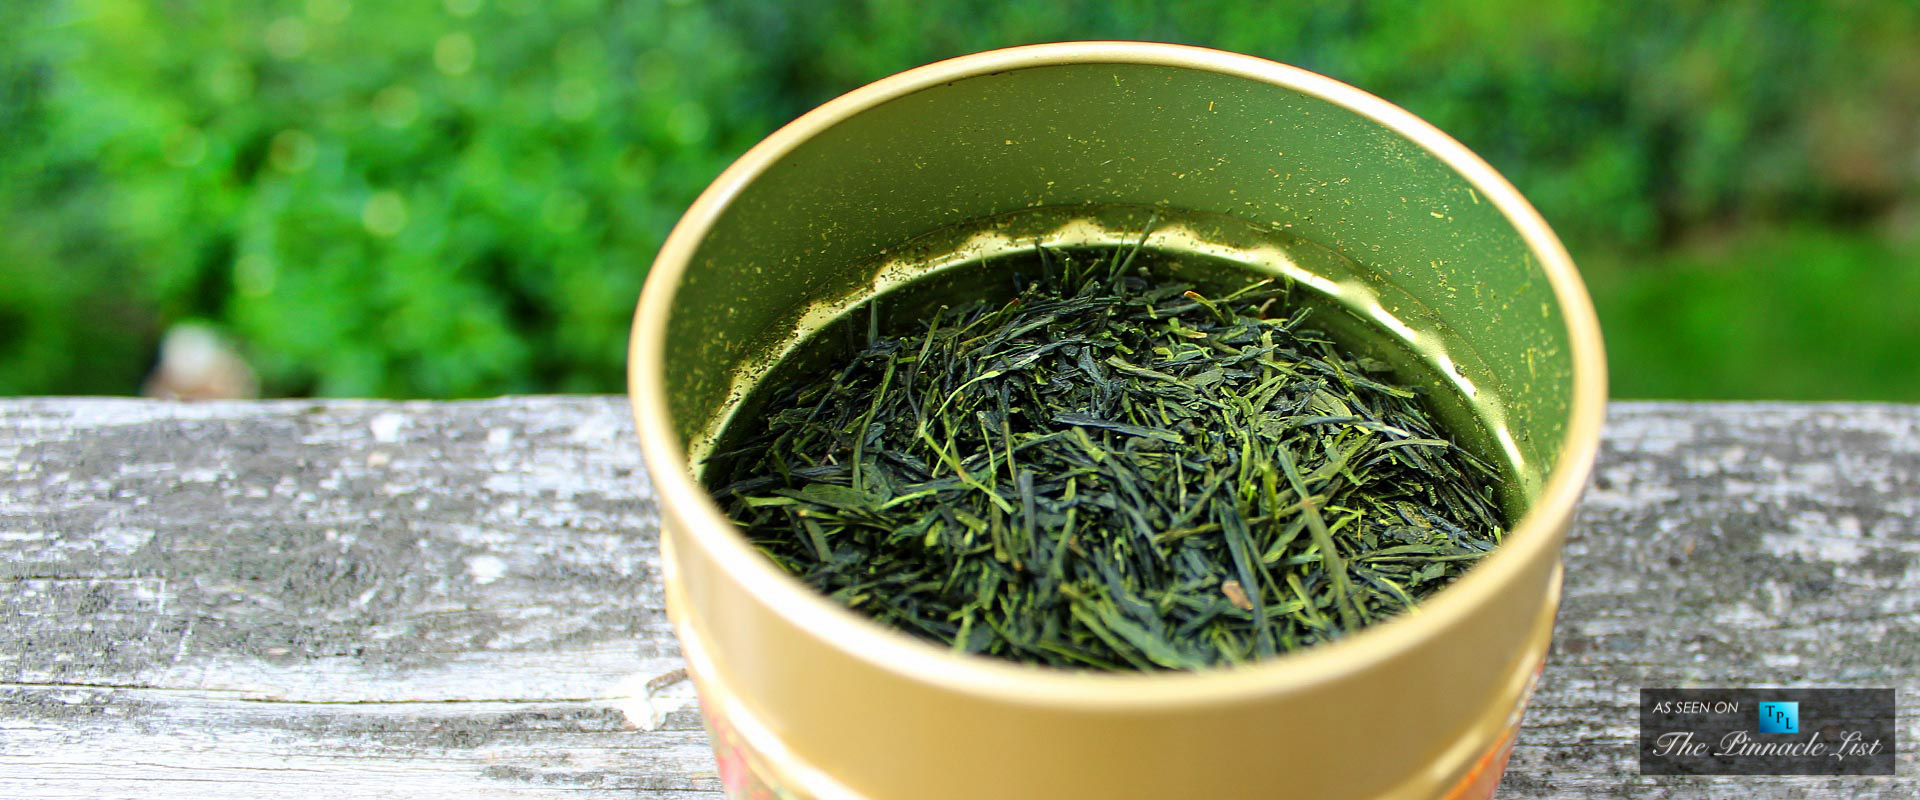 Shincha Green Tea - The Luxury of Japanese Green Tea - A Global Phenomenon for Living a Healthy Lifestyle